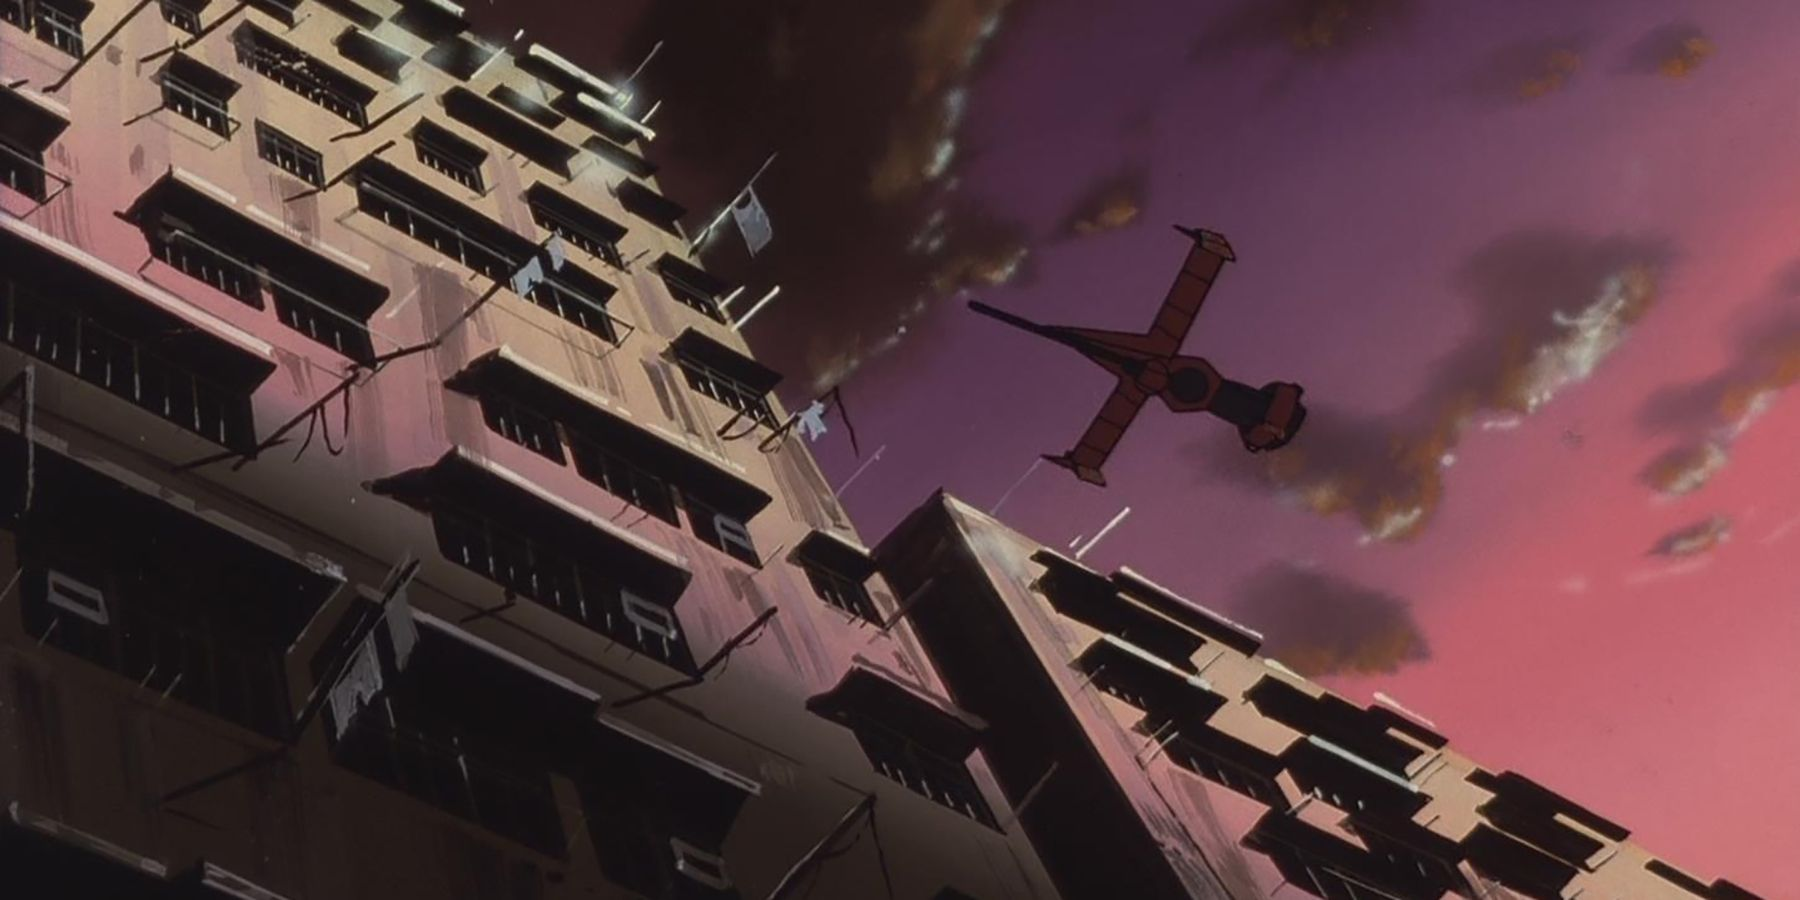 A Game Adaptation of Cowboy Bebop Has a Lot of Potential, If Done Right